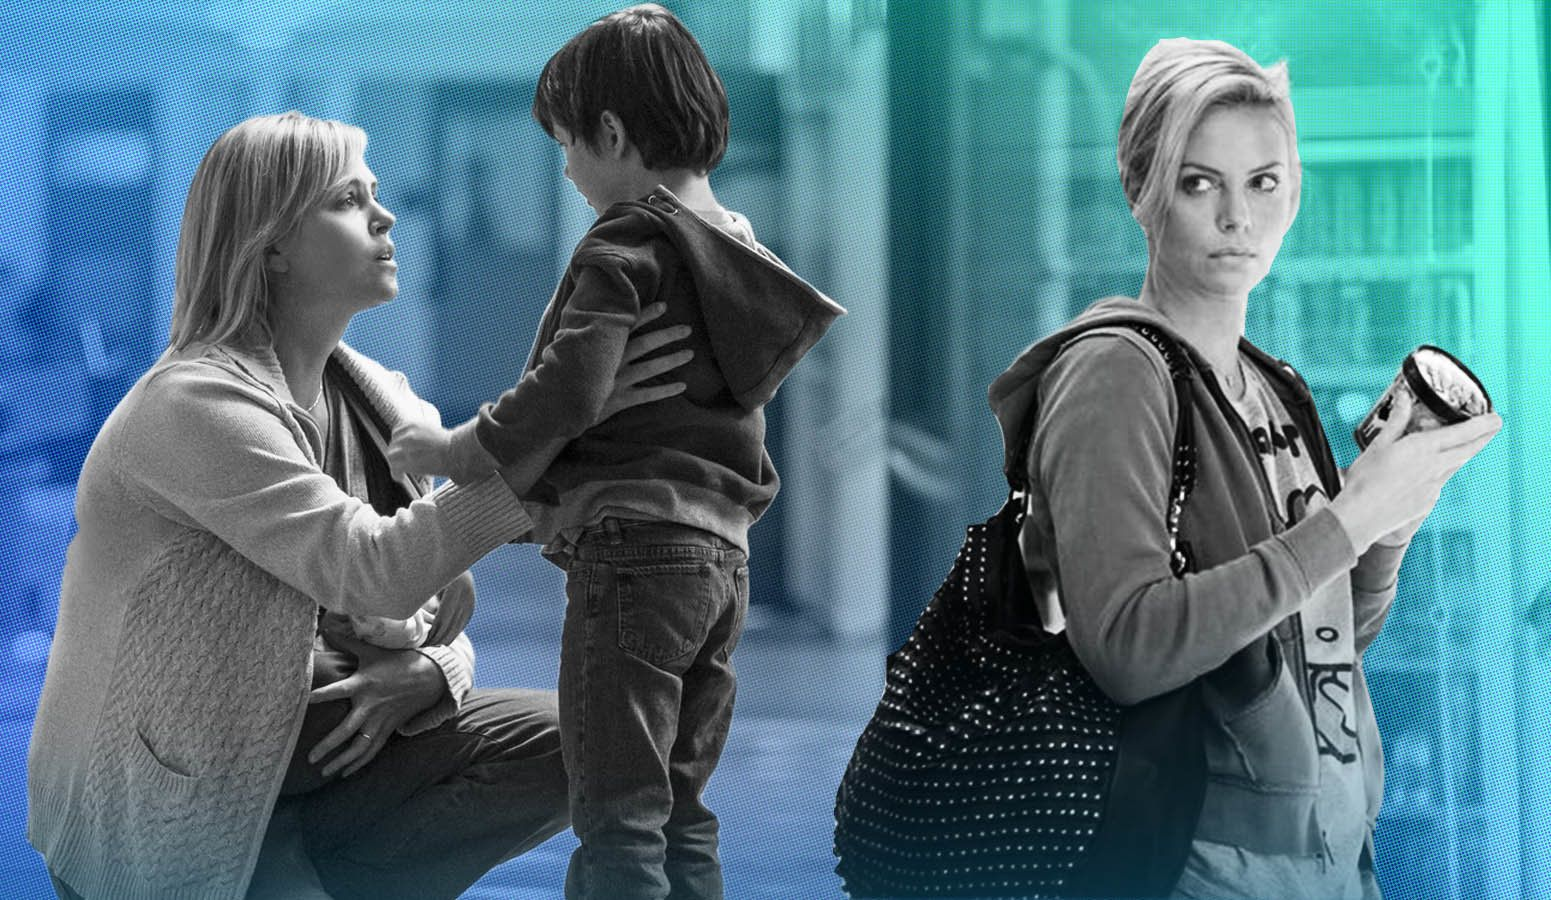 Charlize Theron and Diablo Cody Explore the Woes of #MomLife in Tully